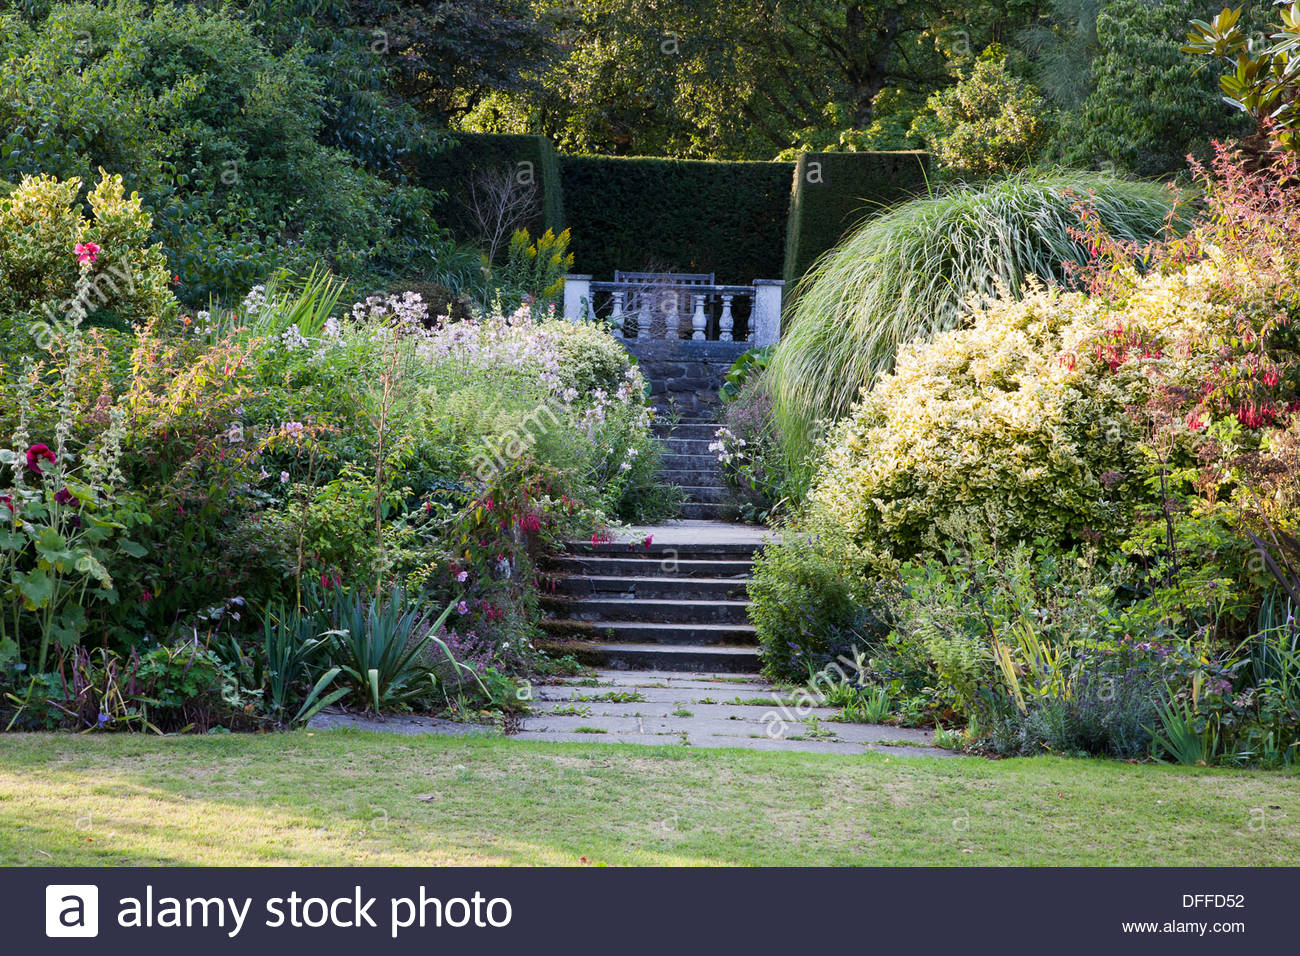 Garden stone steps stock photos garden stone steps stock images stone steps leading to balustraded platform through mixed late summer planting garden great comp workwithnaturefo